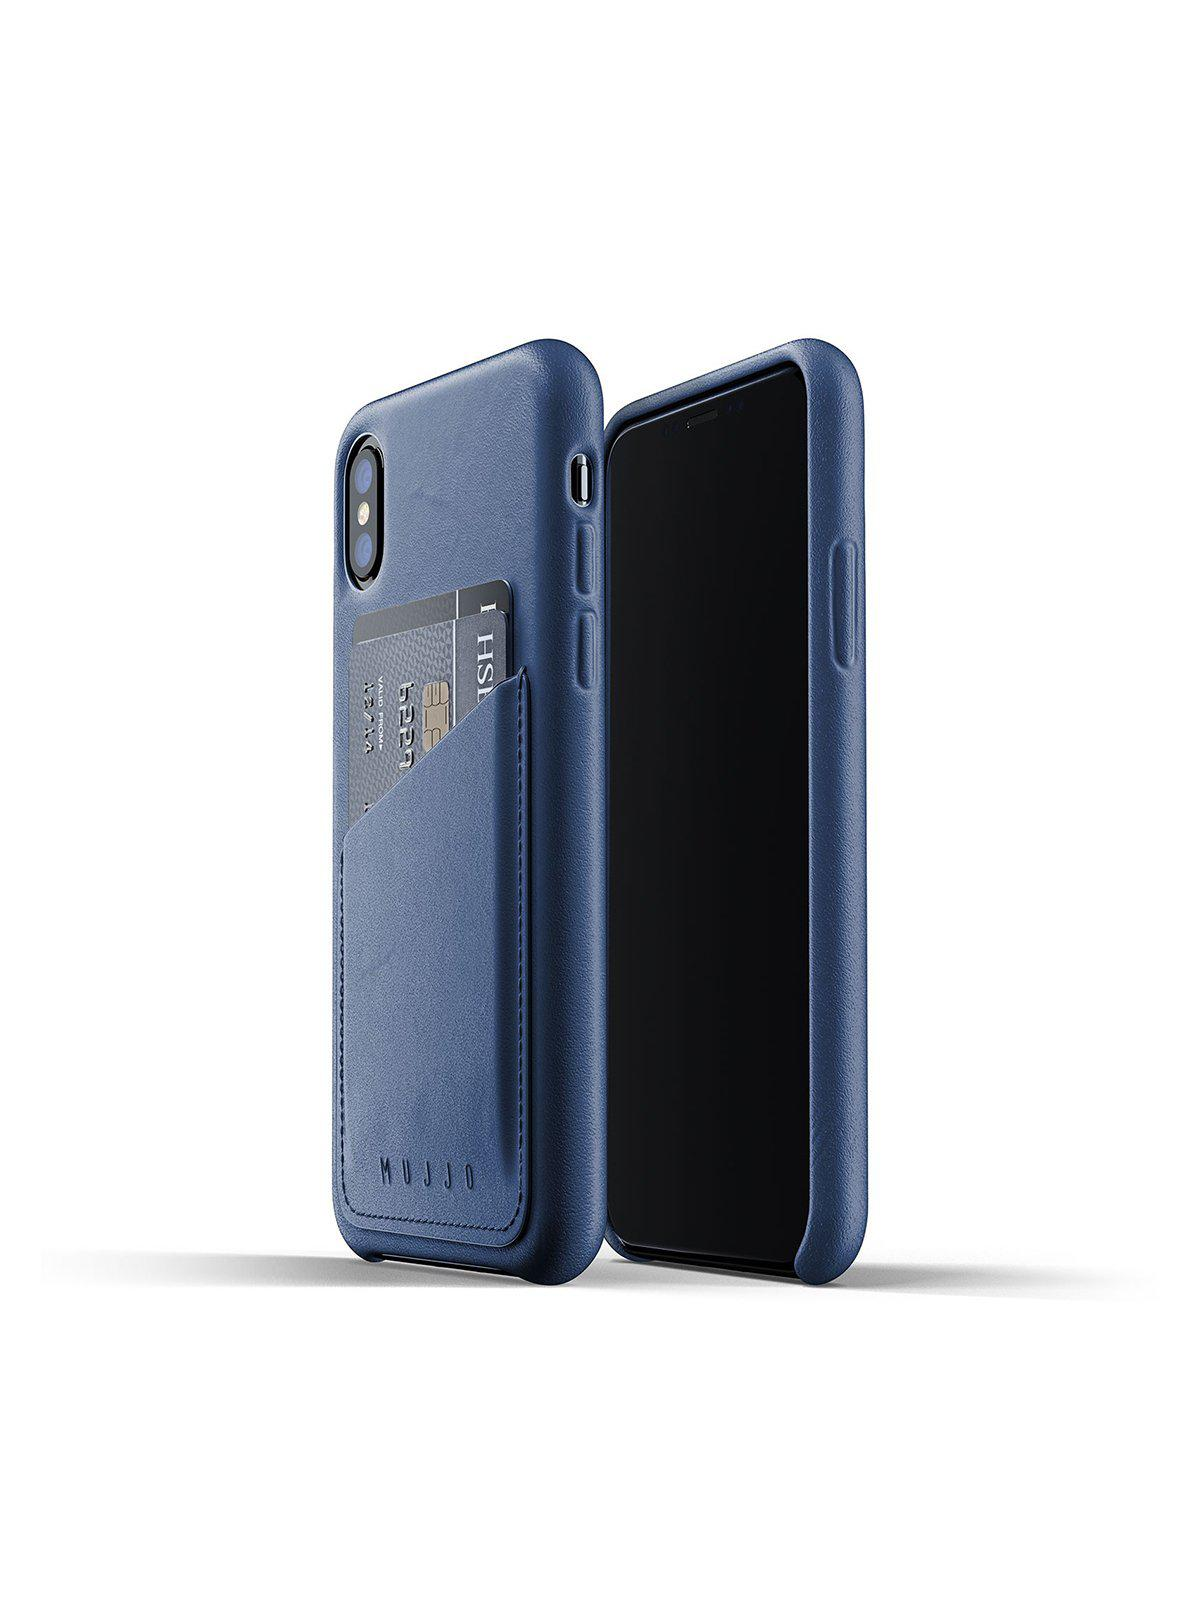 Mujjo Full Leather Wallet Case for iPhone XS Monaco Blue - MORE by Morello Indonesia